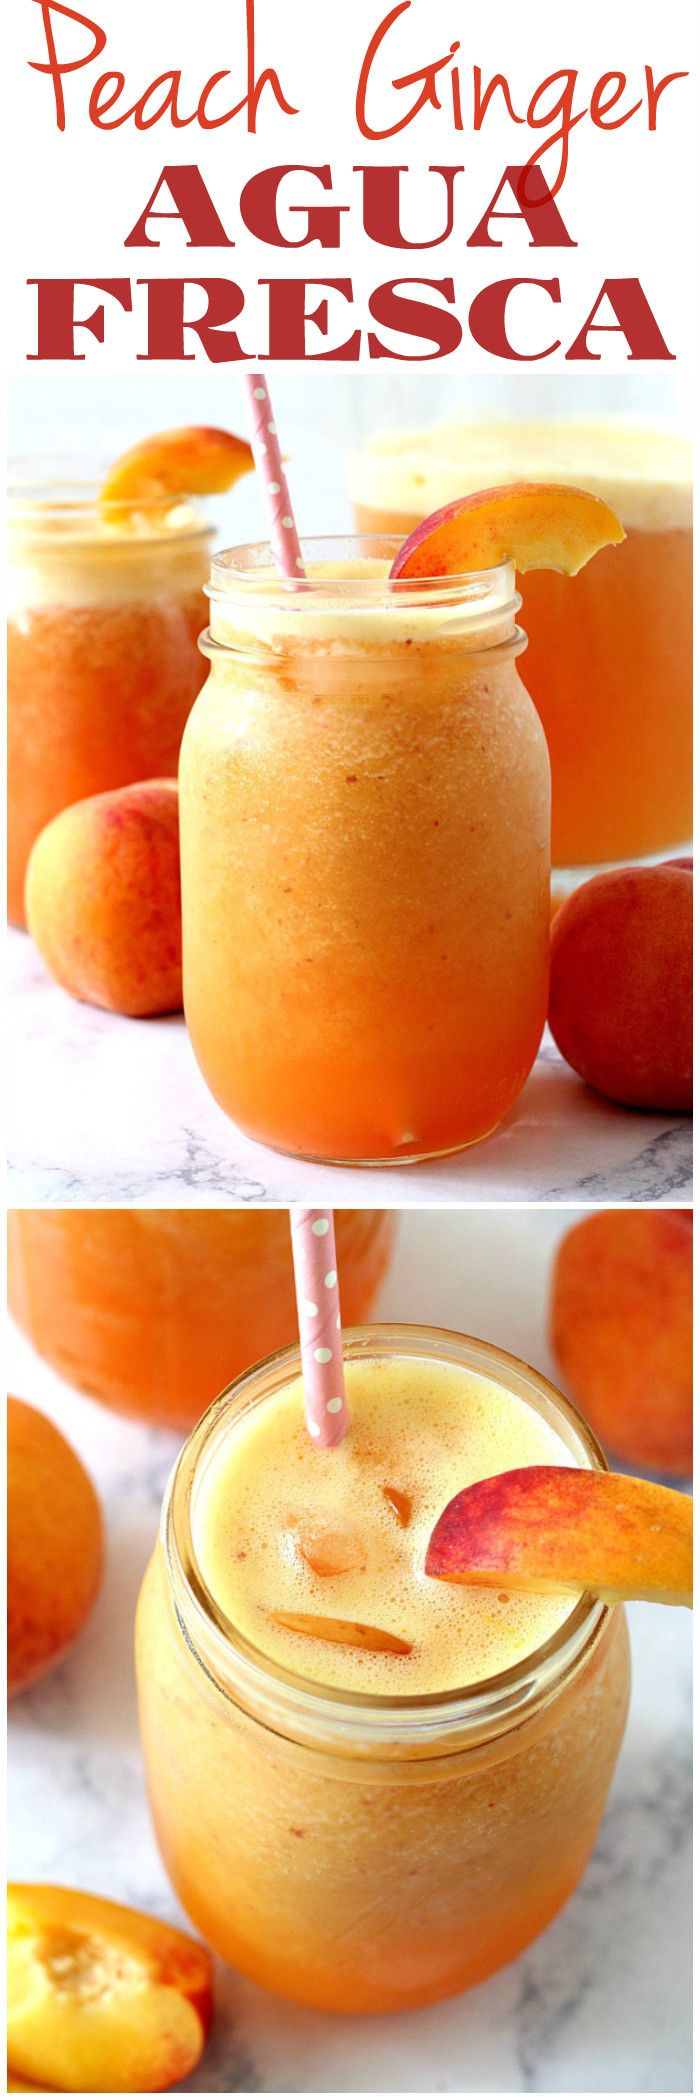 Peach Ginger Agua Fresca Recipe - refreshing fruit water made with peaches, ginger and honey. Good for you and hydrating during the hot summer days.